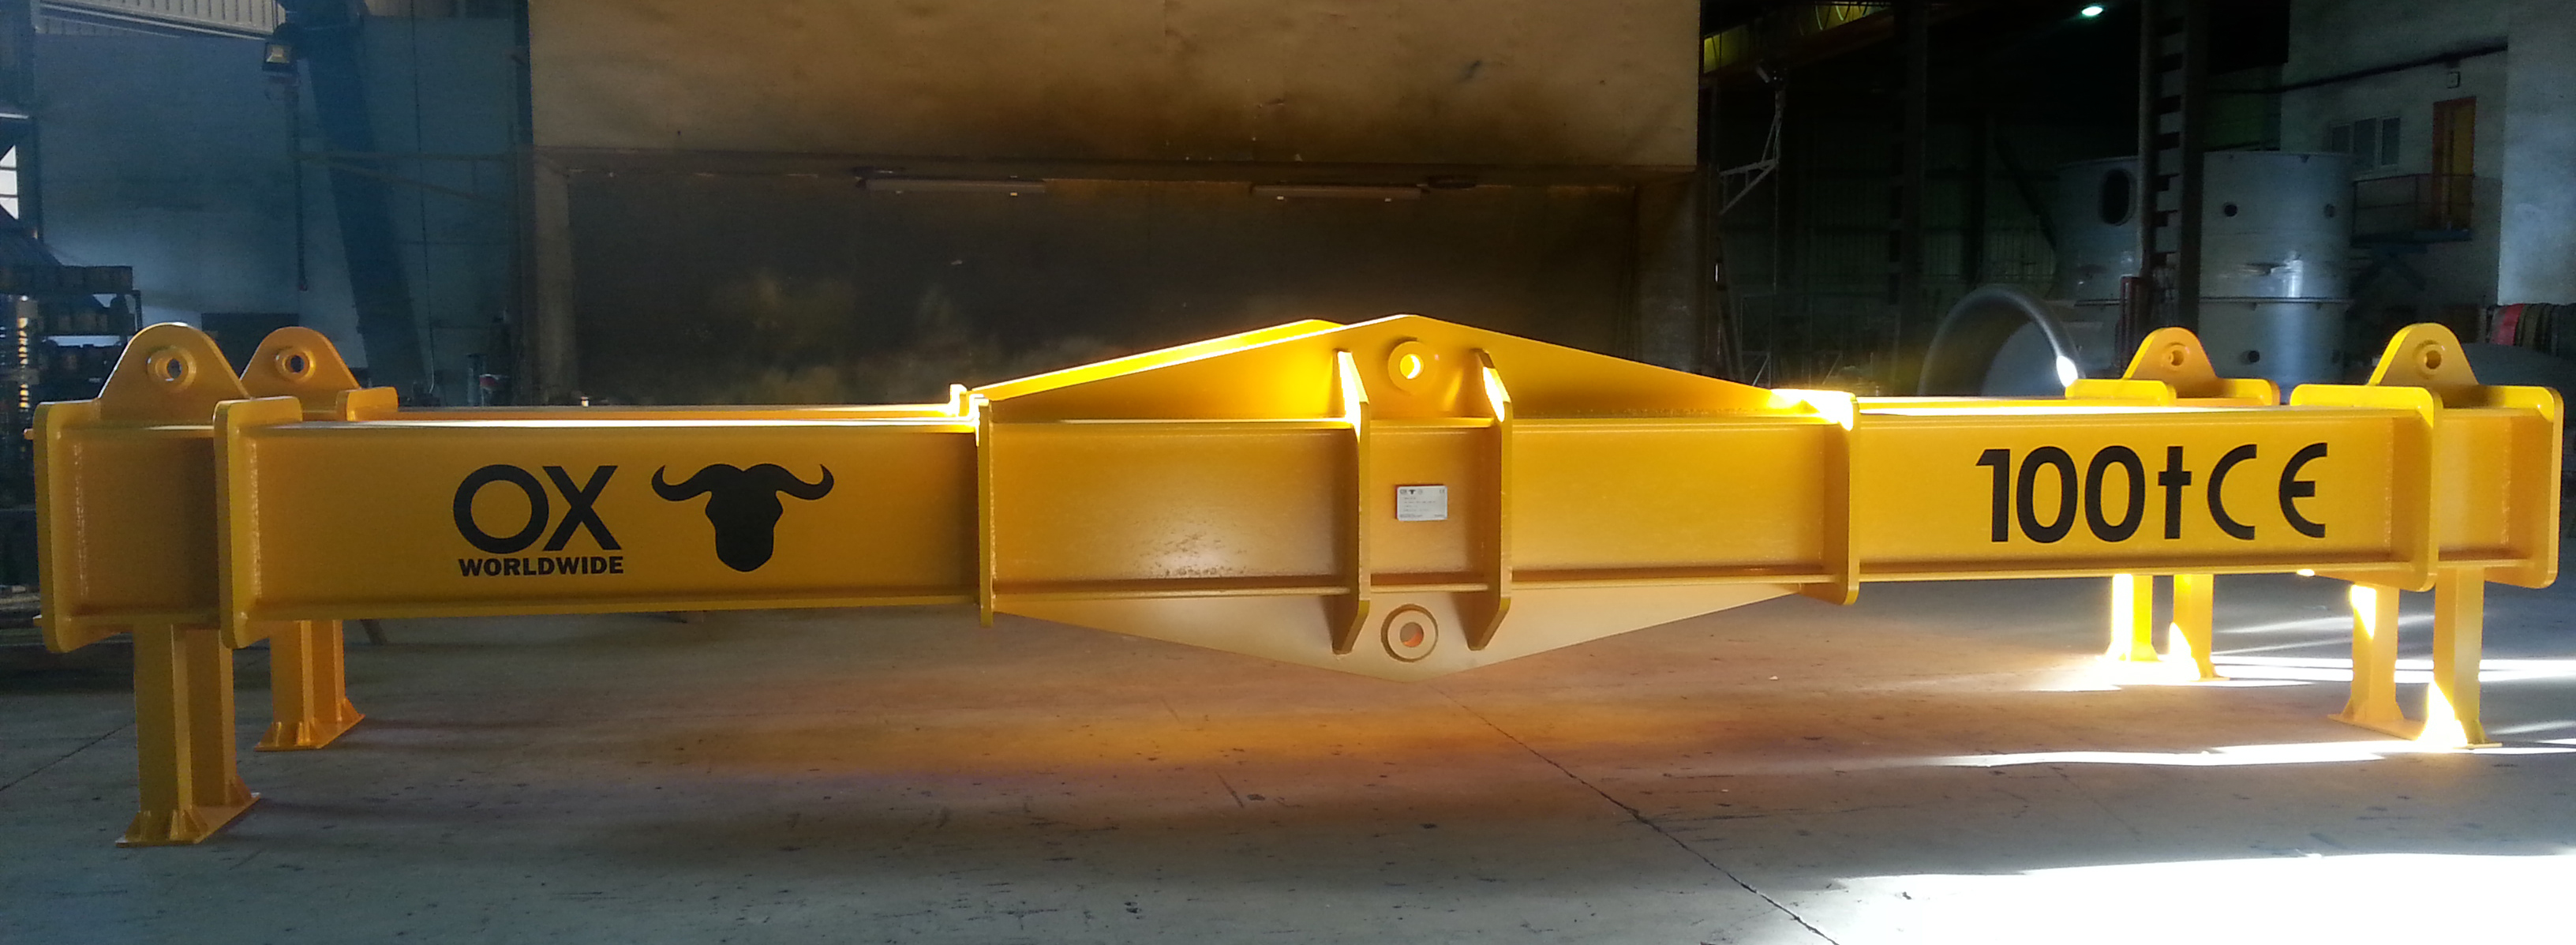 SPREADER BEAM FOR HEAVY LOADS Ox Worldwide